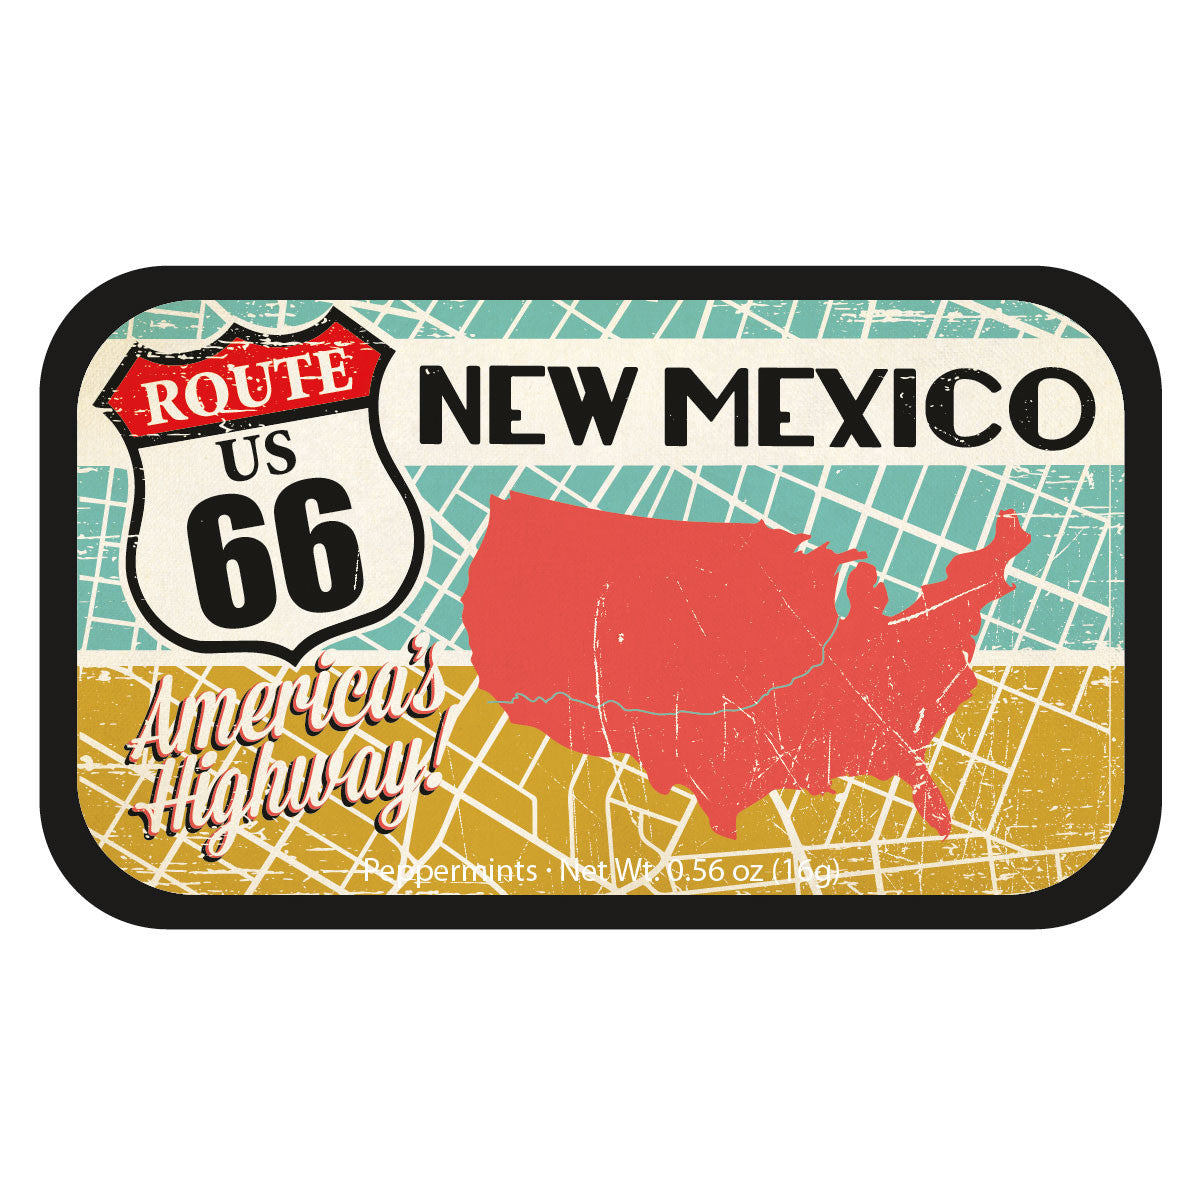 Route 66 Map New Mexico - 1290S